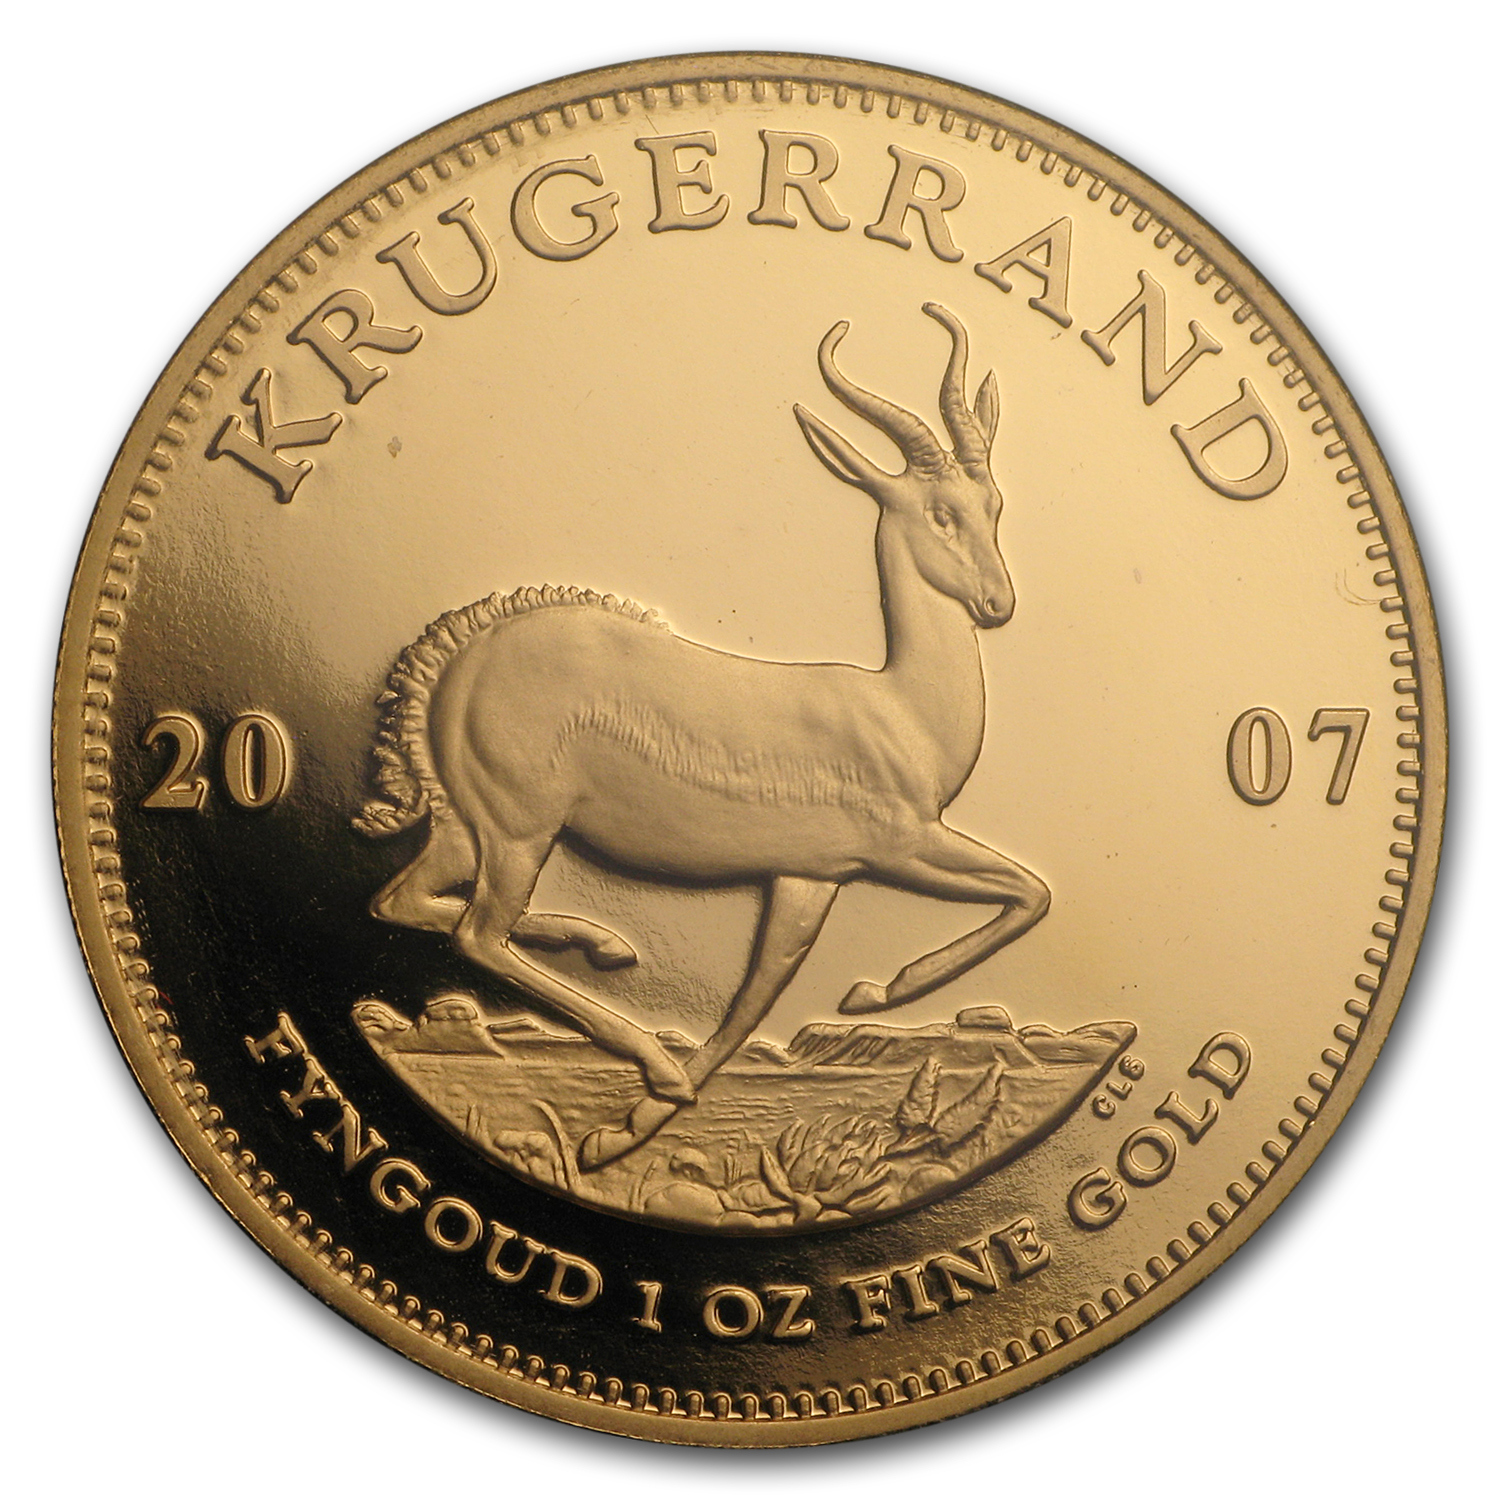 2007 South Africa 4-Coin Gold Krugerrand Proof Set (FS)